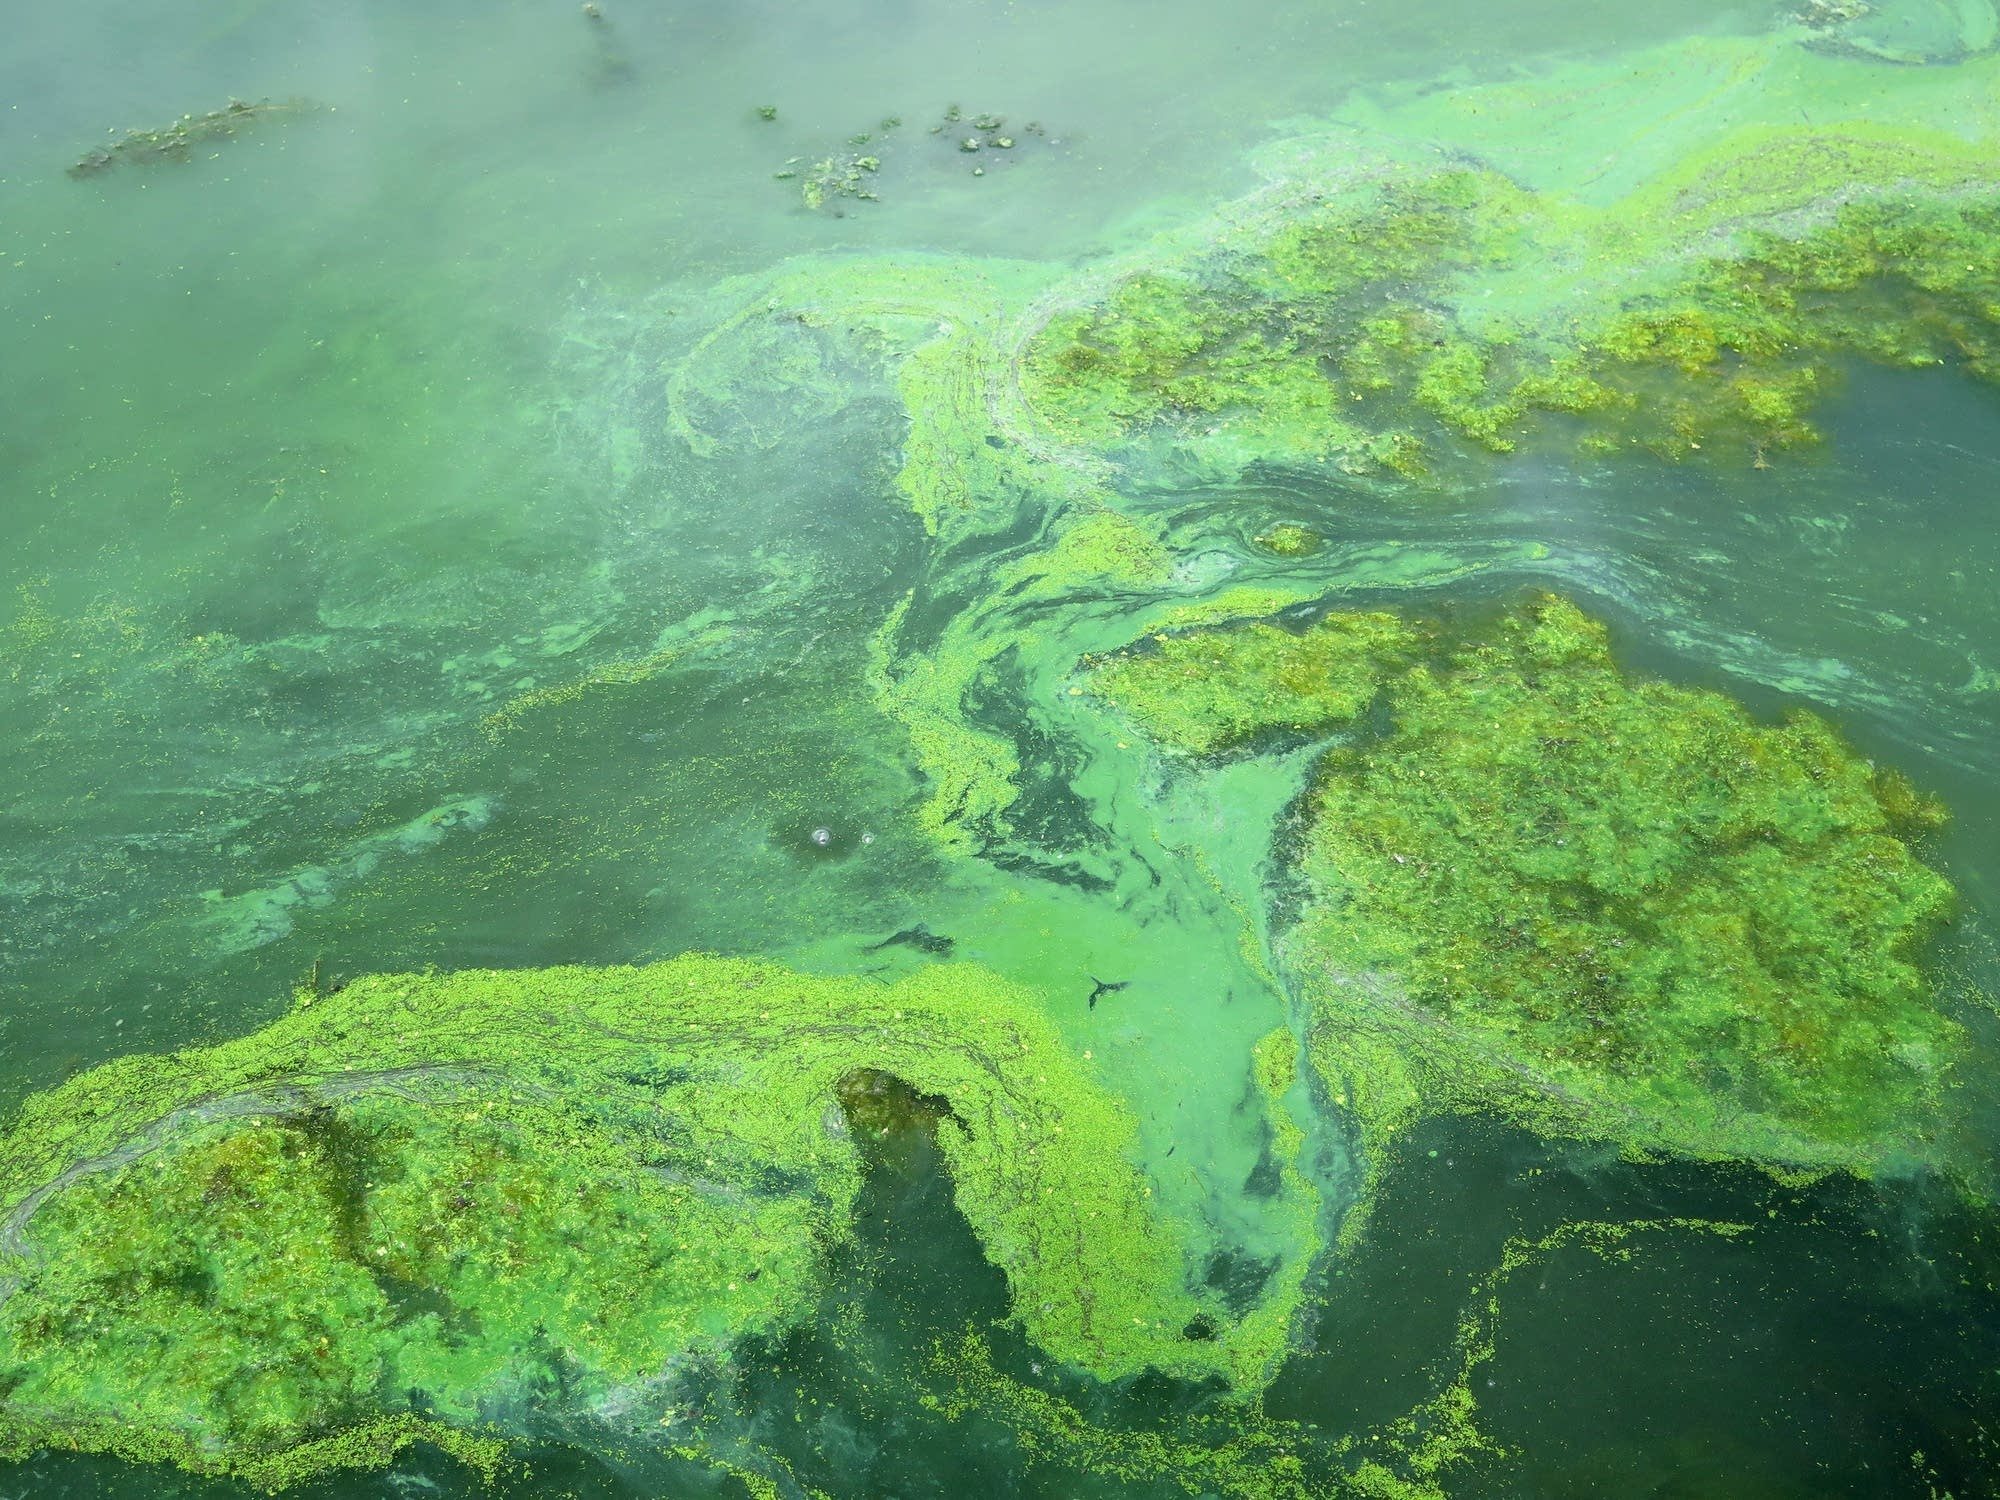 When lake temperatures warm, blue-green algae thrives.